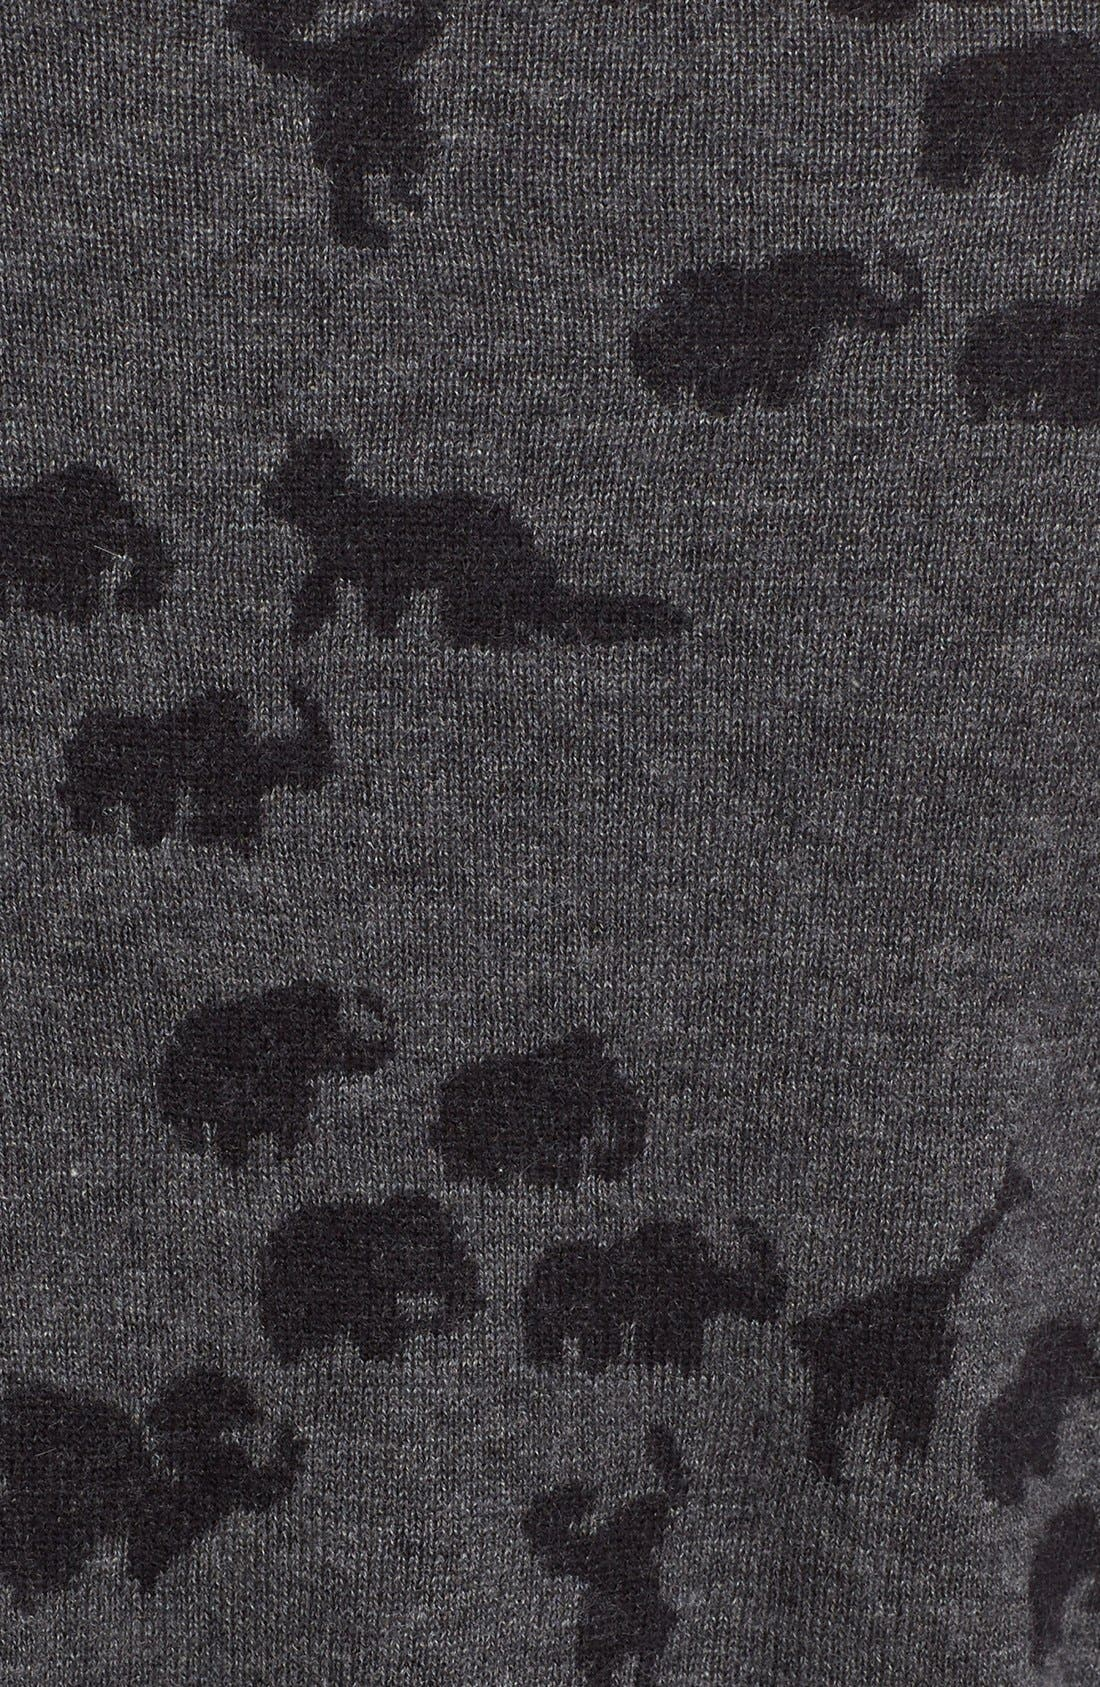 Alternate Image 3  - MARC JACOBS Animal Jacquard Cashmere Sweater